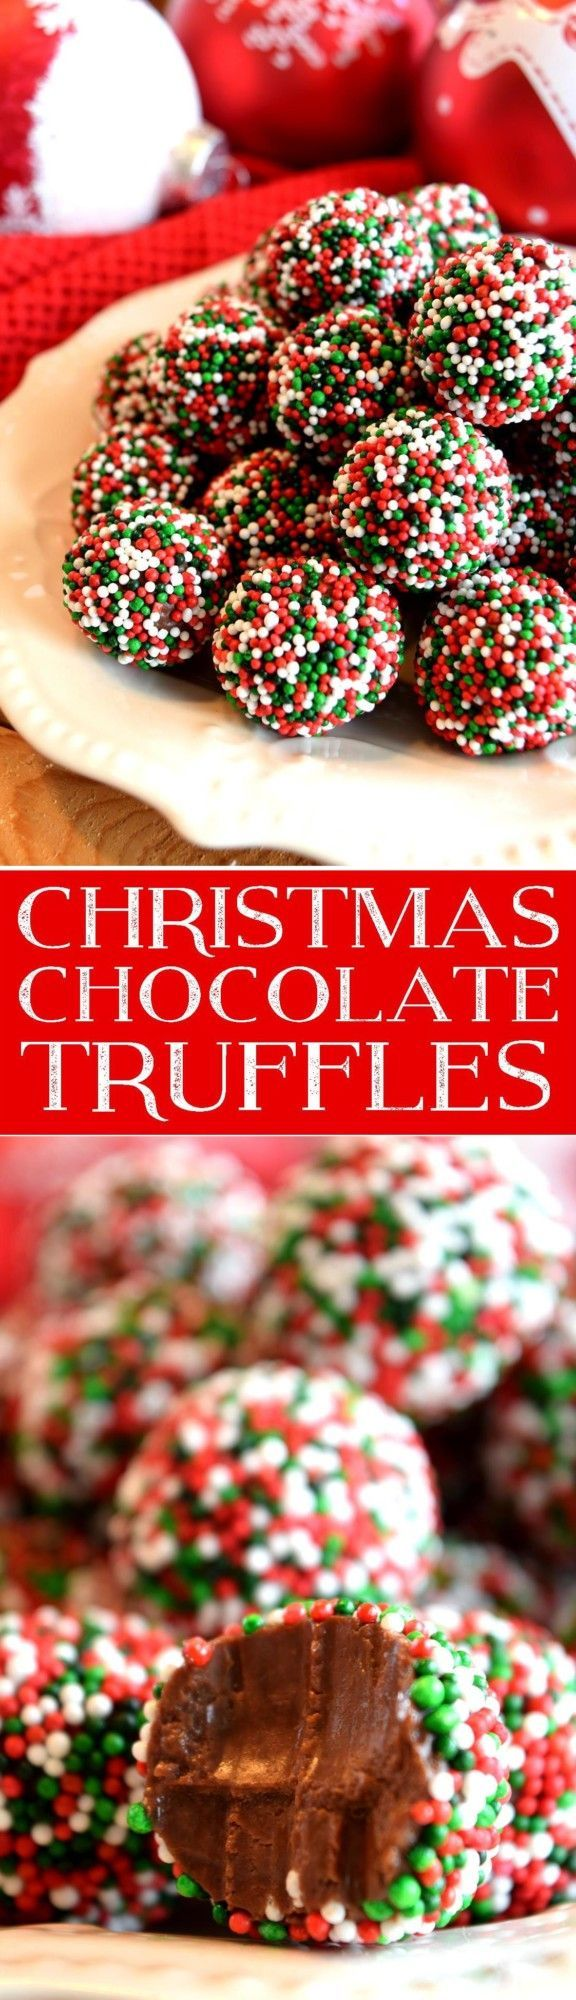 Truffles are the perfect homemade candy for Christmas! These look extra festive with holiday sprinkles